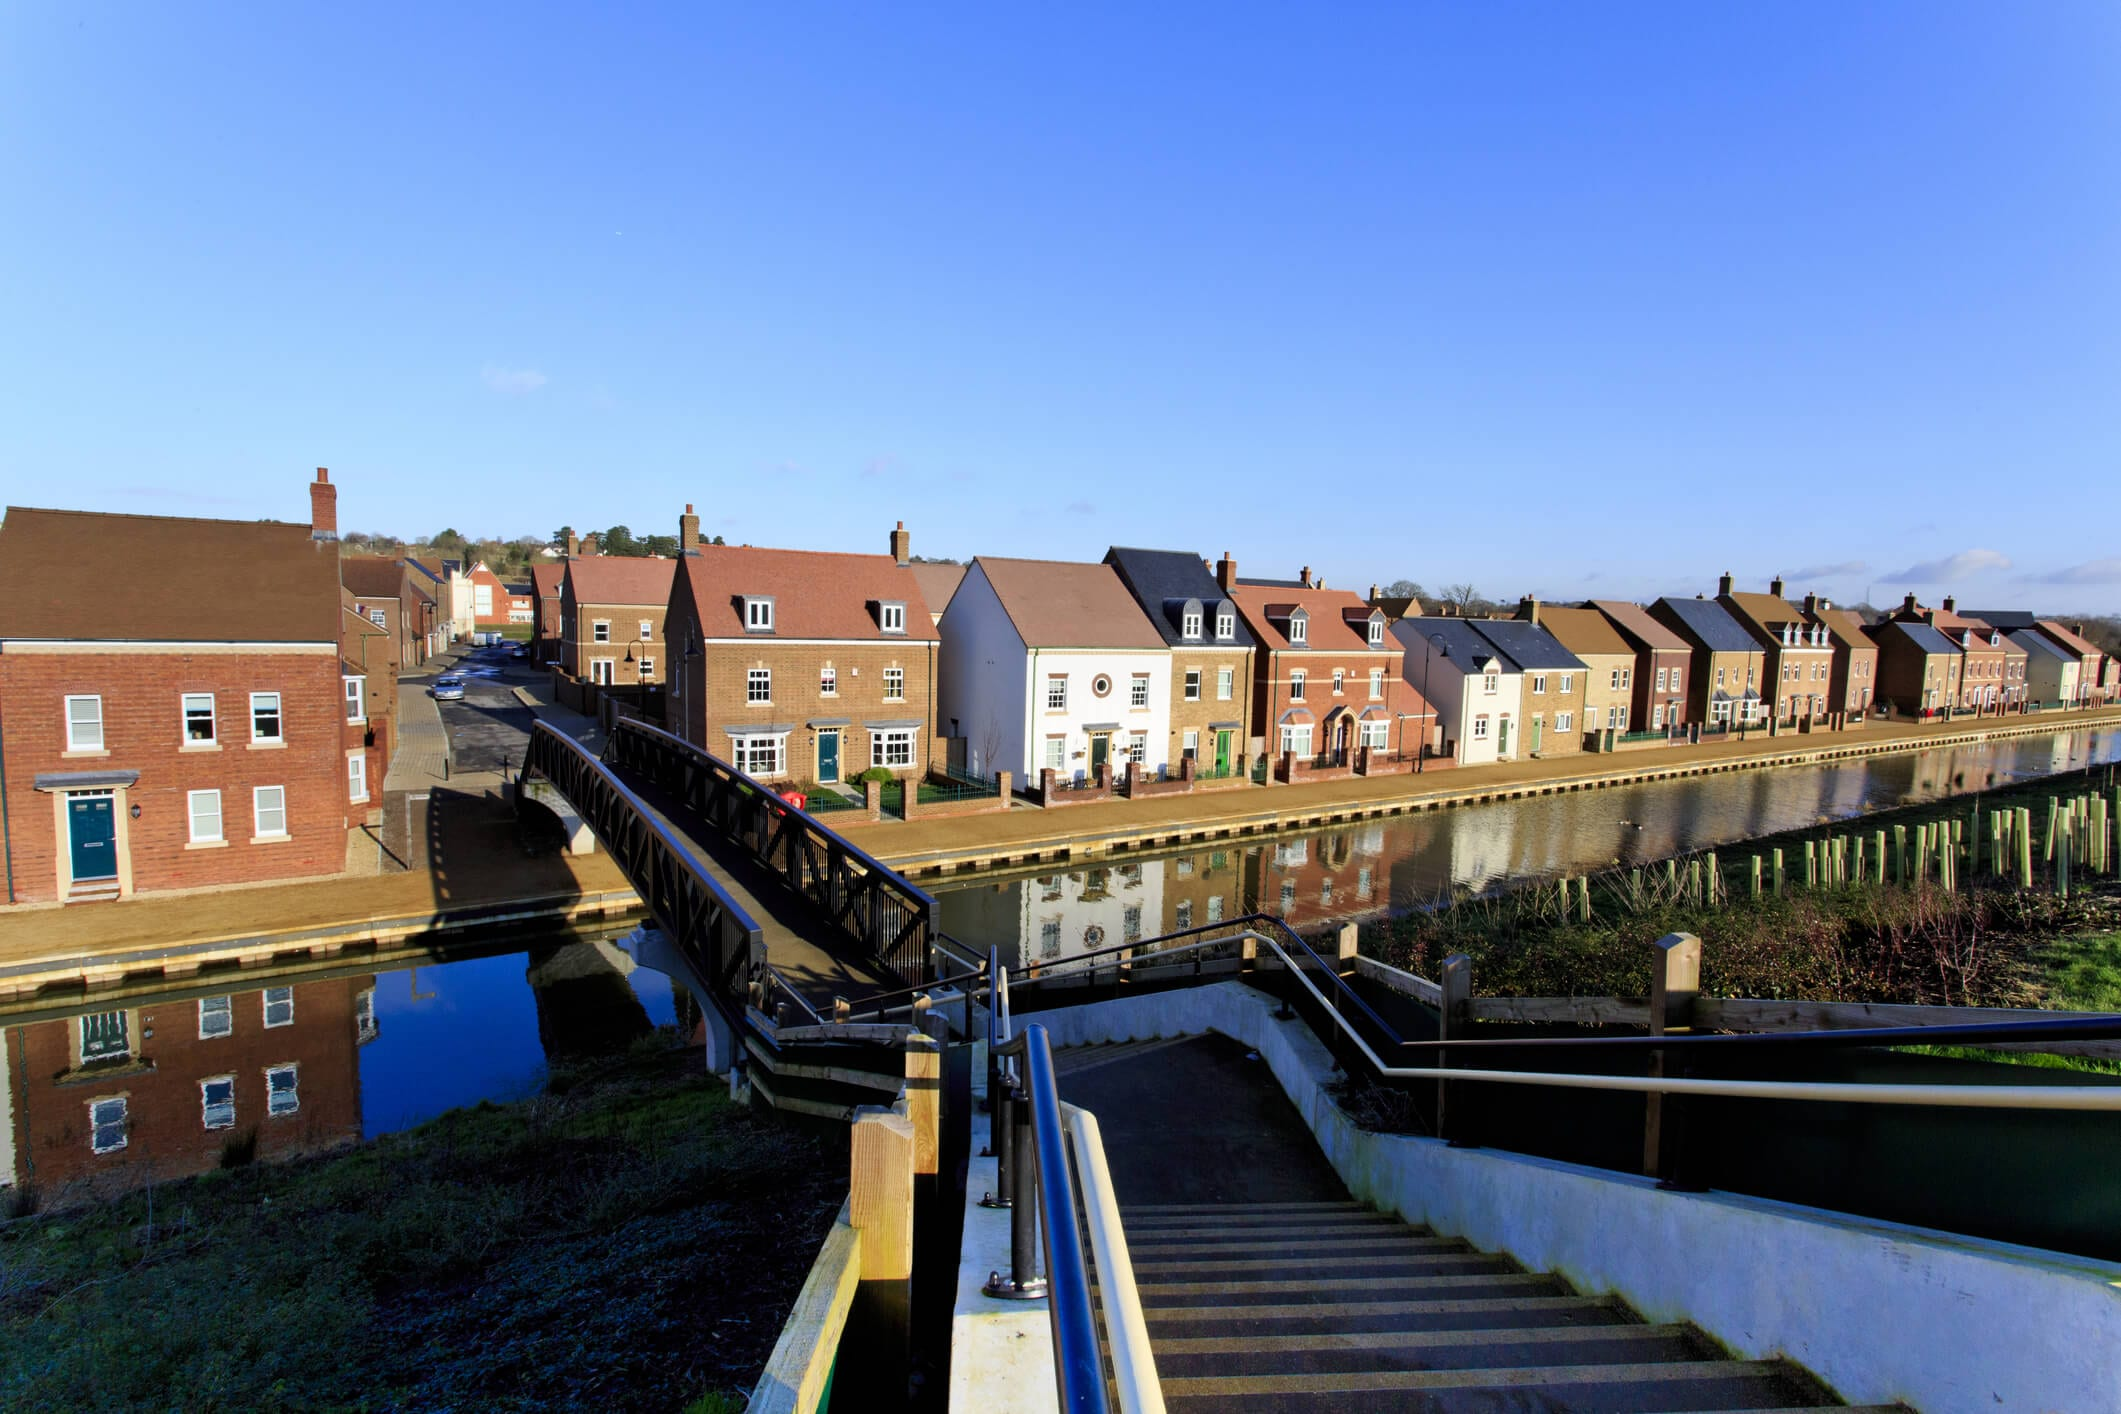 Footbridge leading to a new housing estate